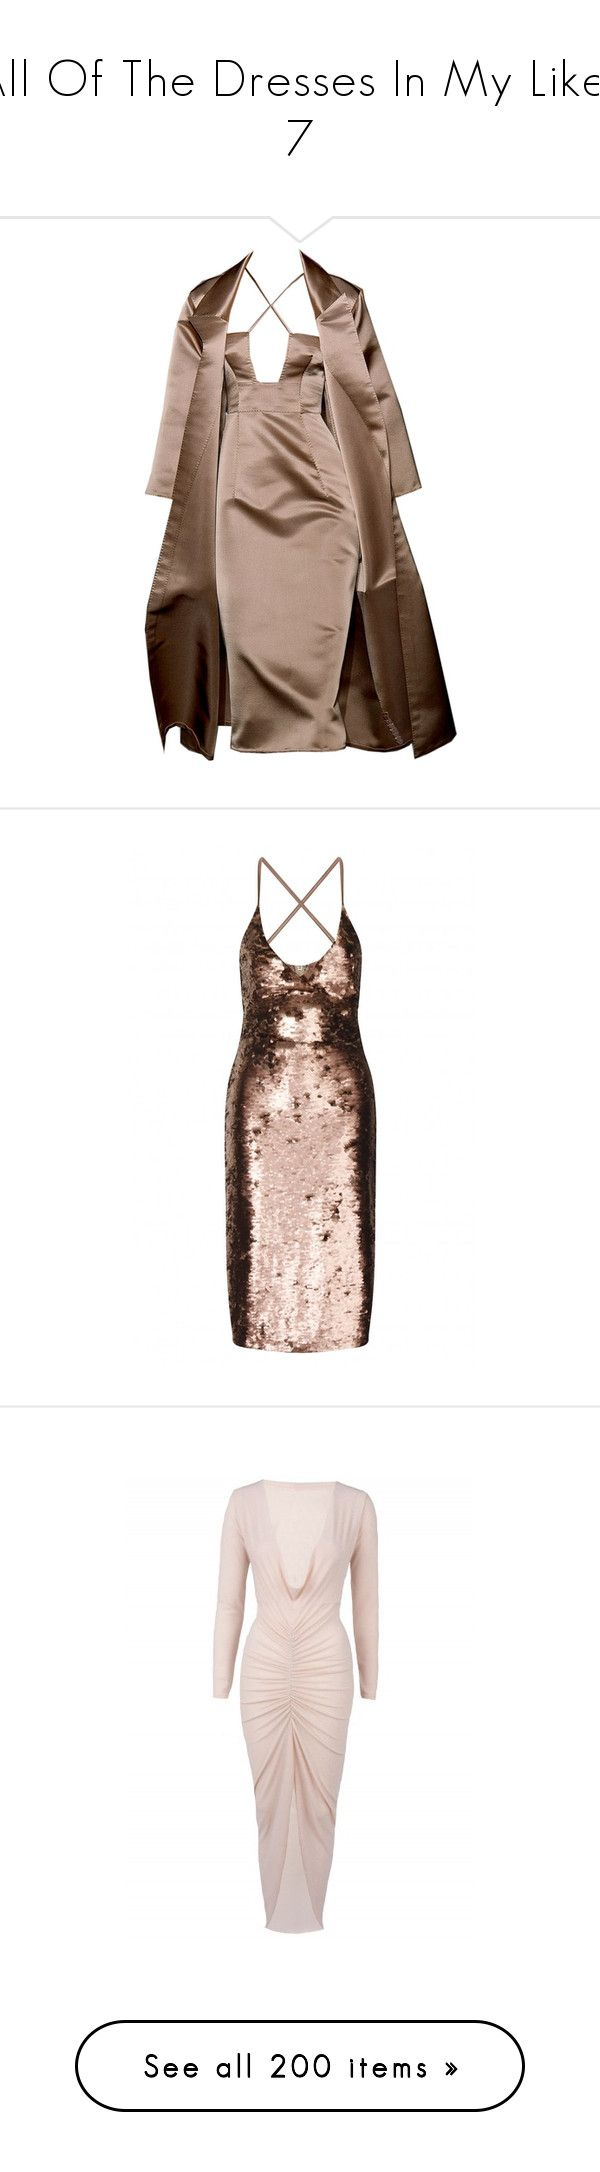 """All Of The Dresses In My Likes 7"" by velvet-violets ❤ liked on Polyvore featuring dresses, rose gold bodycon dress, sequin cocktail dresses, form fitting cocktail dresses, pink sequined dresses, pink sequin cocktail dress, white cocktail dress, white cocktail party dresses, white cowl neck dress and night out dresses"